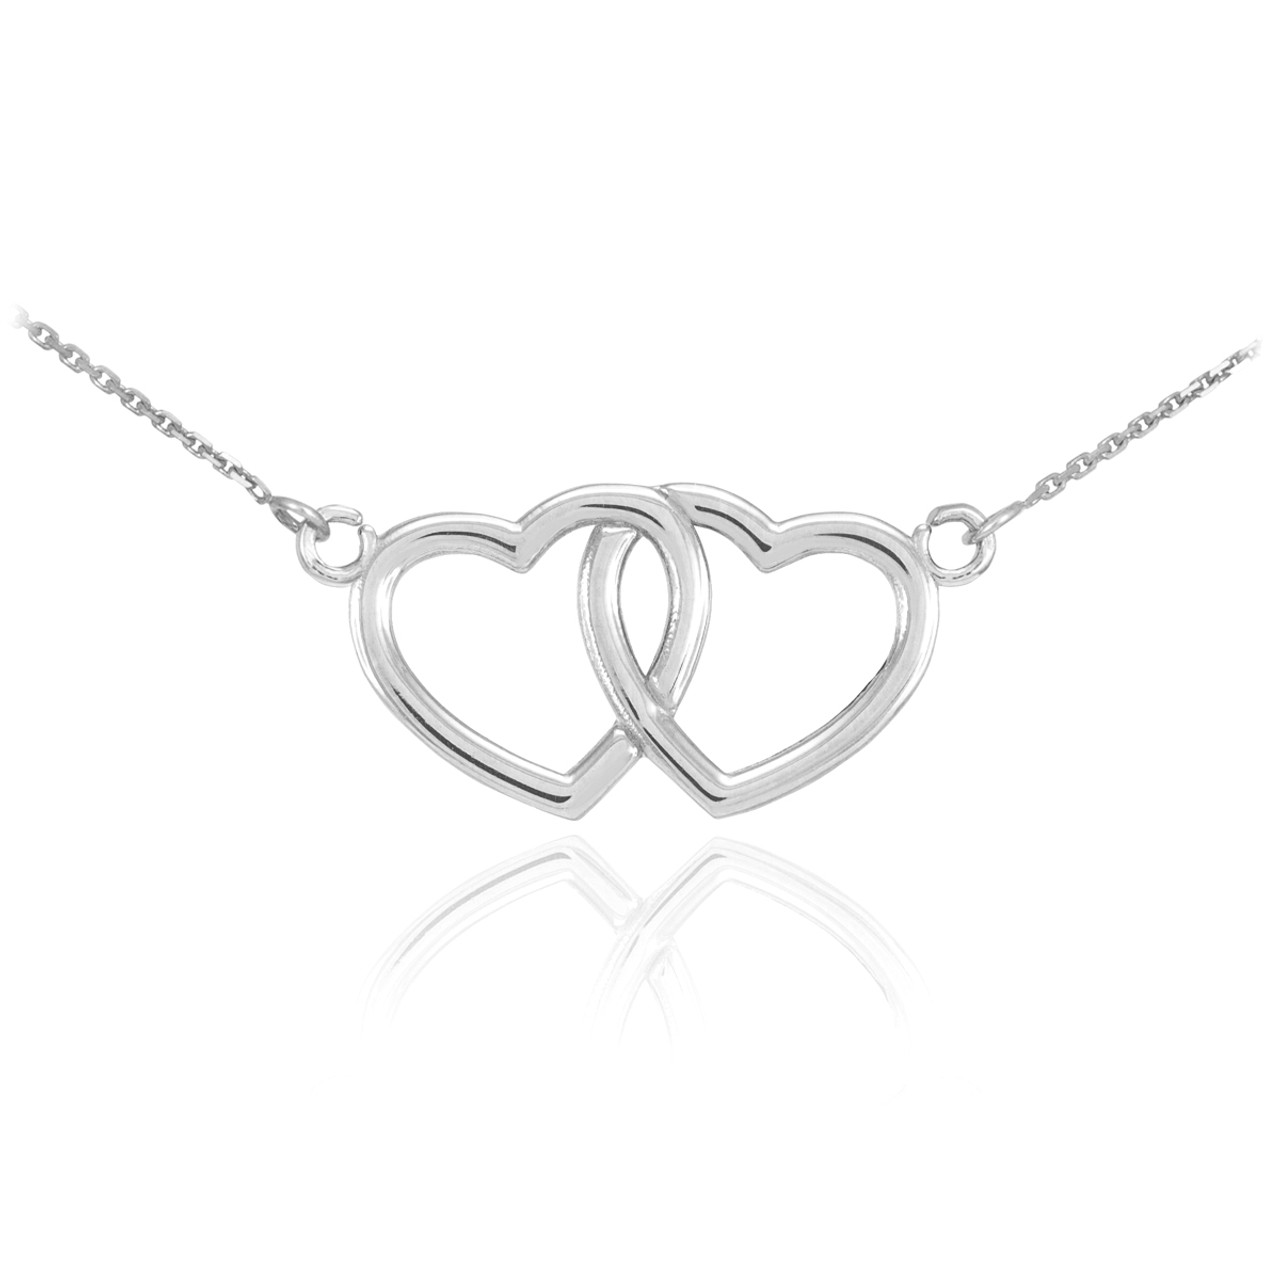 products iydc with necklace dainty n doubleheart heart hearts g gold pendant your in dreams interlocking plated double